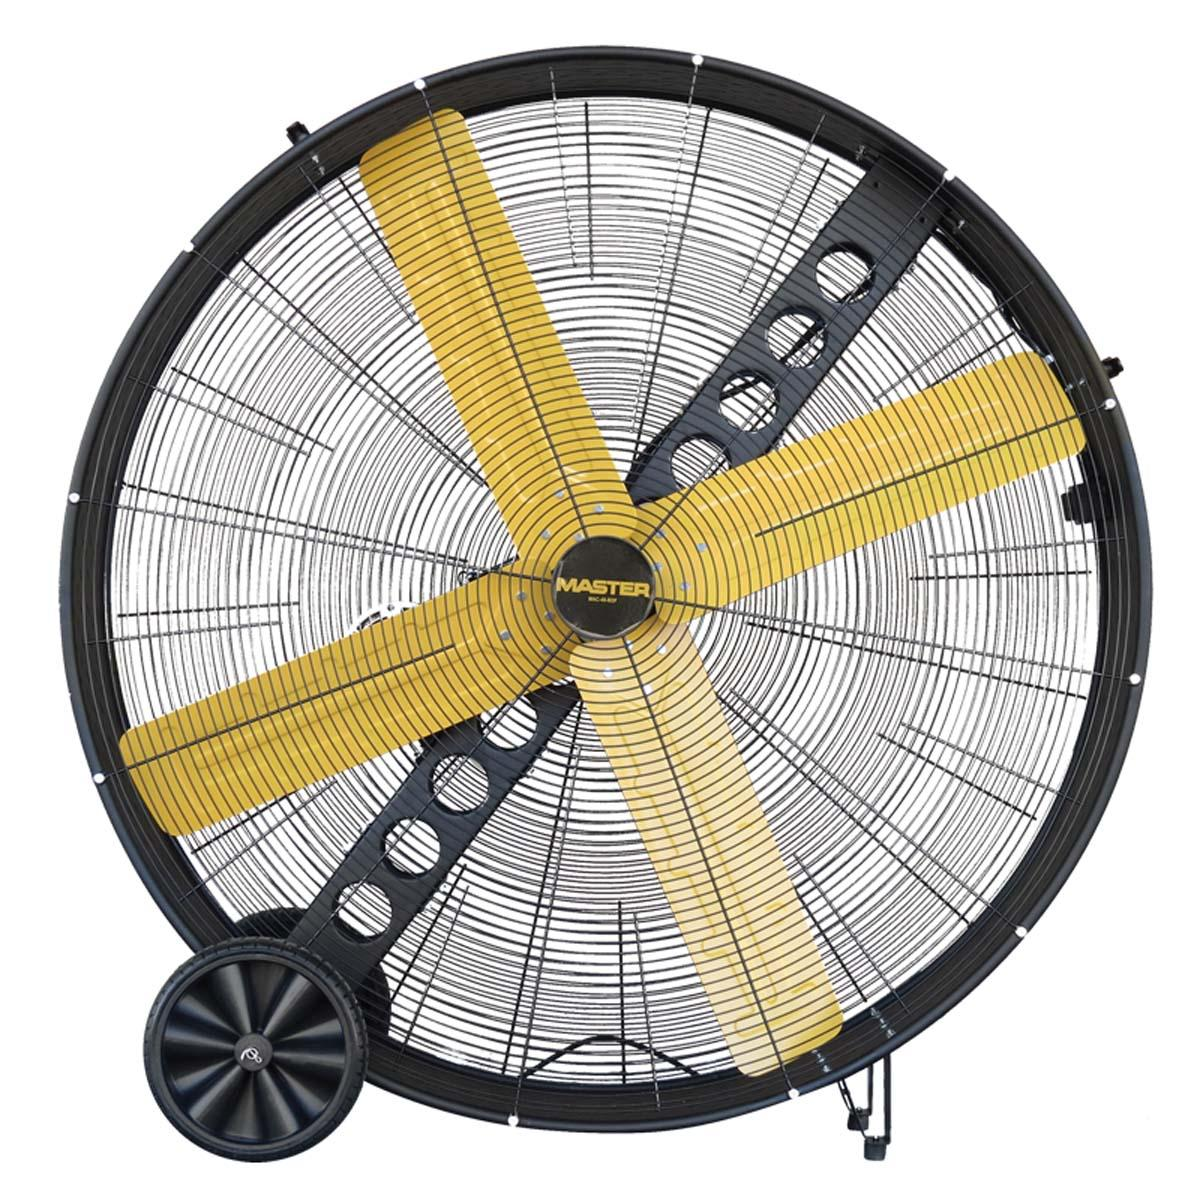 "MASTER 48"" High Capacity Belt Drive Drum Fan"